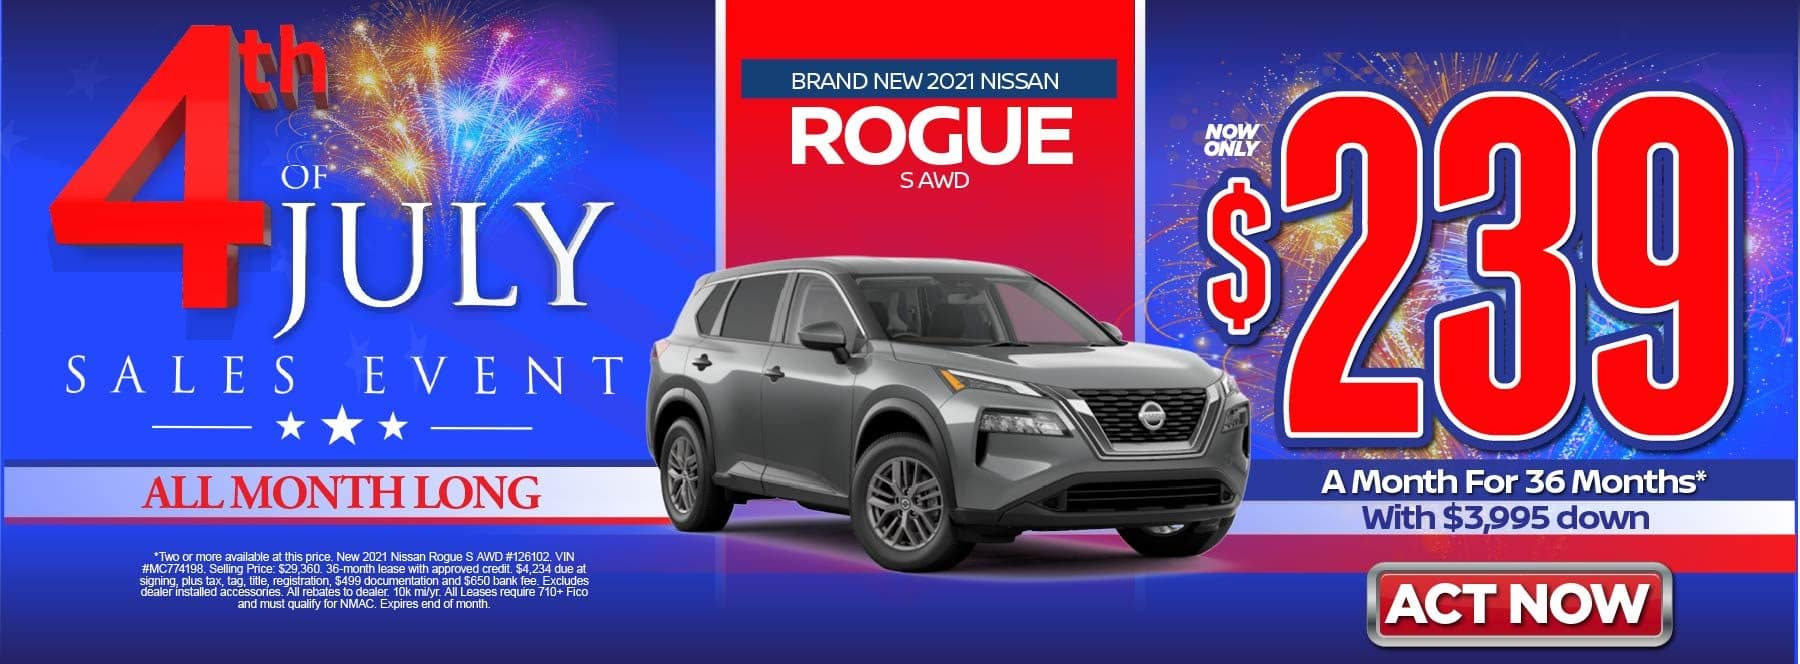 New 2021 Nissan Rogue SV AWD – Lease for $239/mo for 36 months with $3,995 Down* Act now.